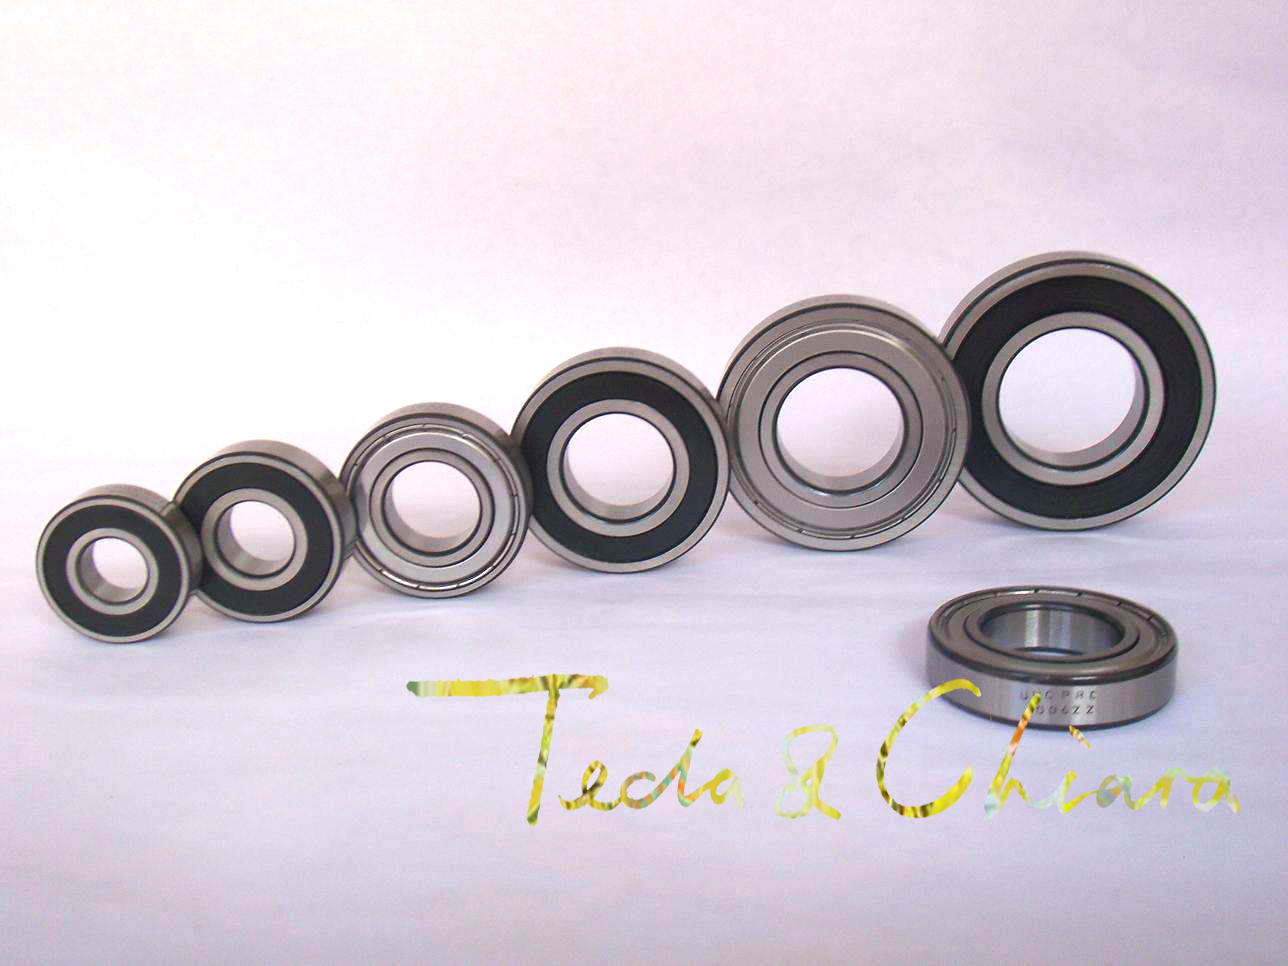 636 636ZZ 636RS 636-2Z 636Z 636-2RS ZZ RS RZ 2RZ Deep Groove Ball Bearings 6 x 22 x 7mm High Quality free shipping 25x47x12mm deep groove ball bearings 6005 zz 2z 6005zz bearing 6005zz 6005 2rs